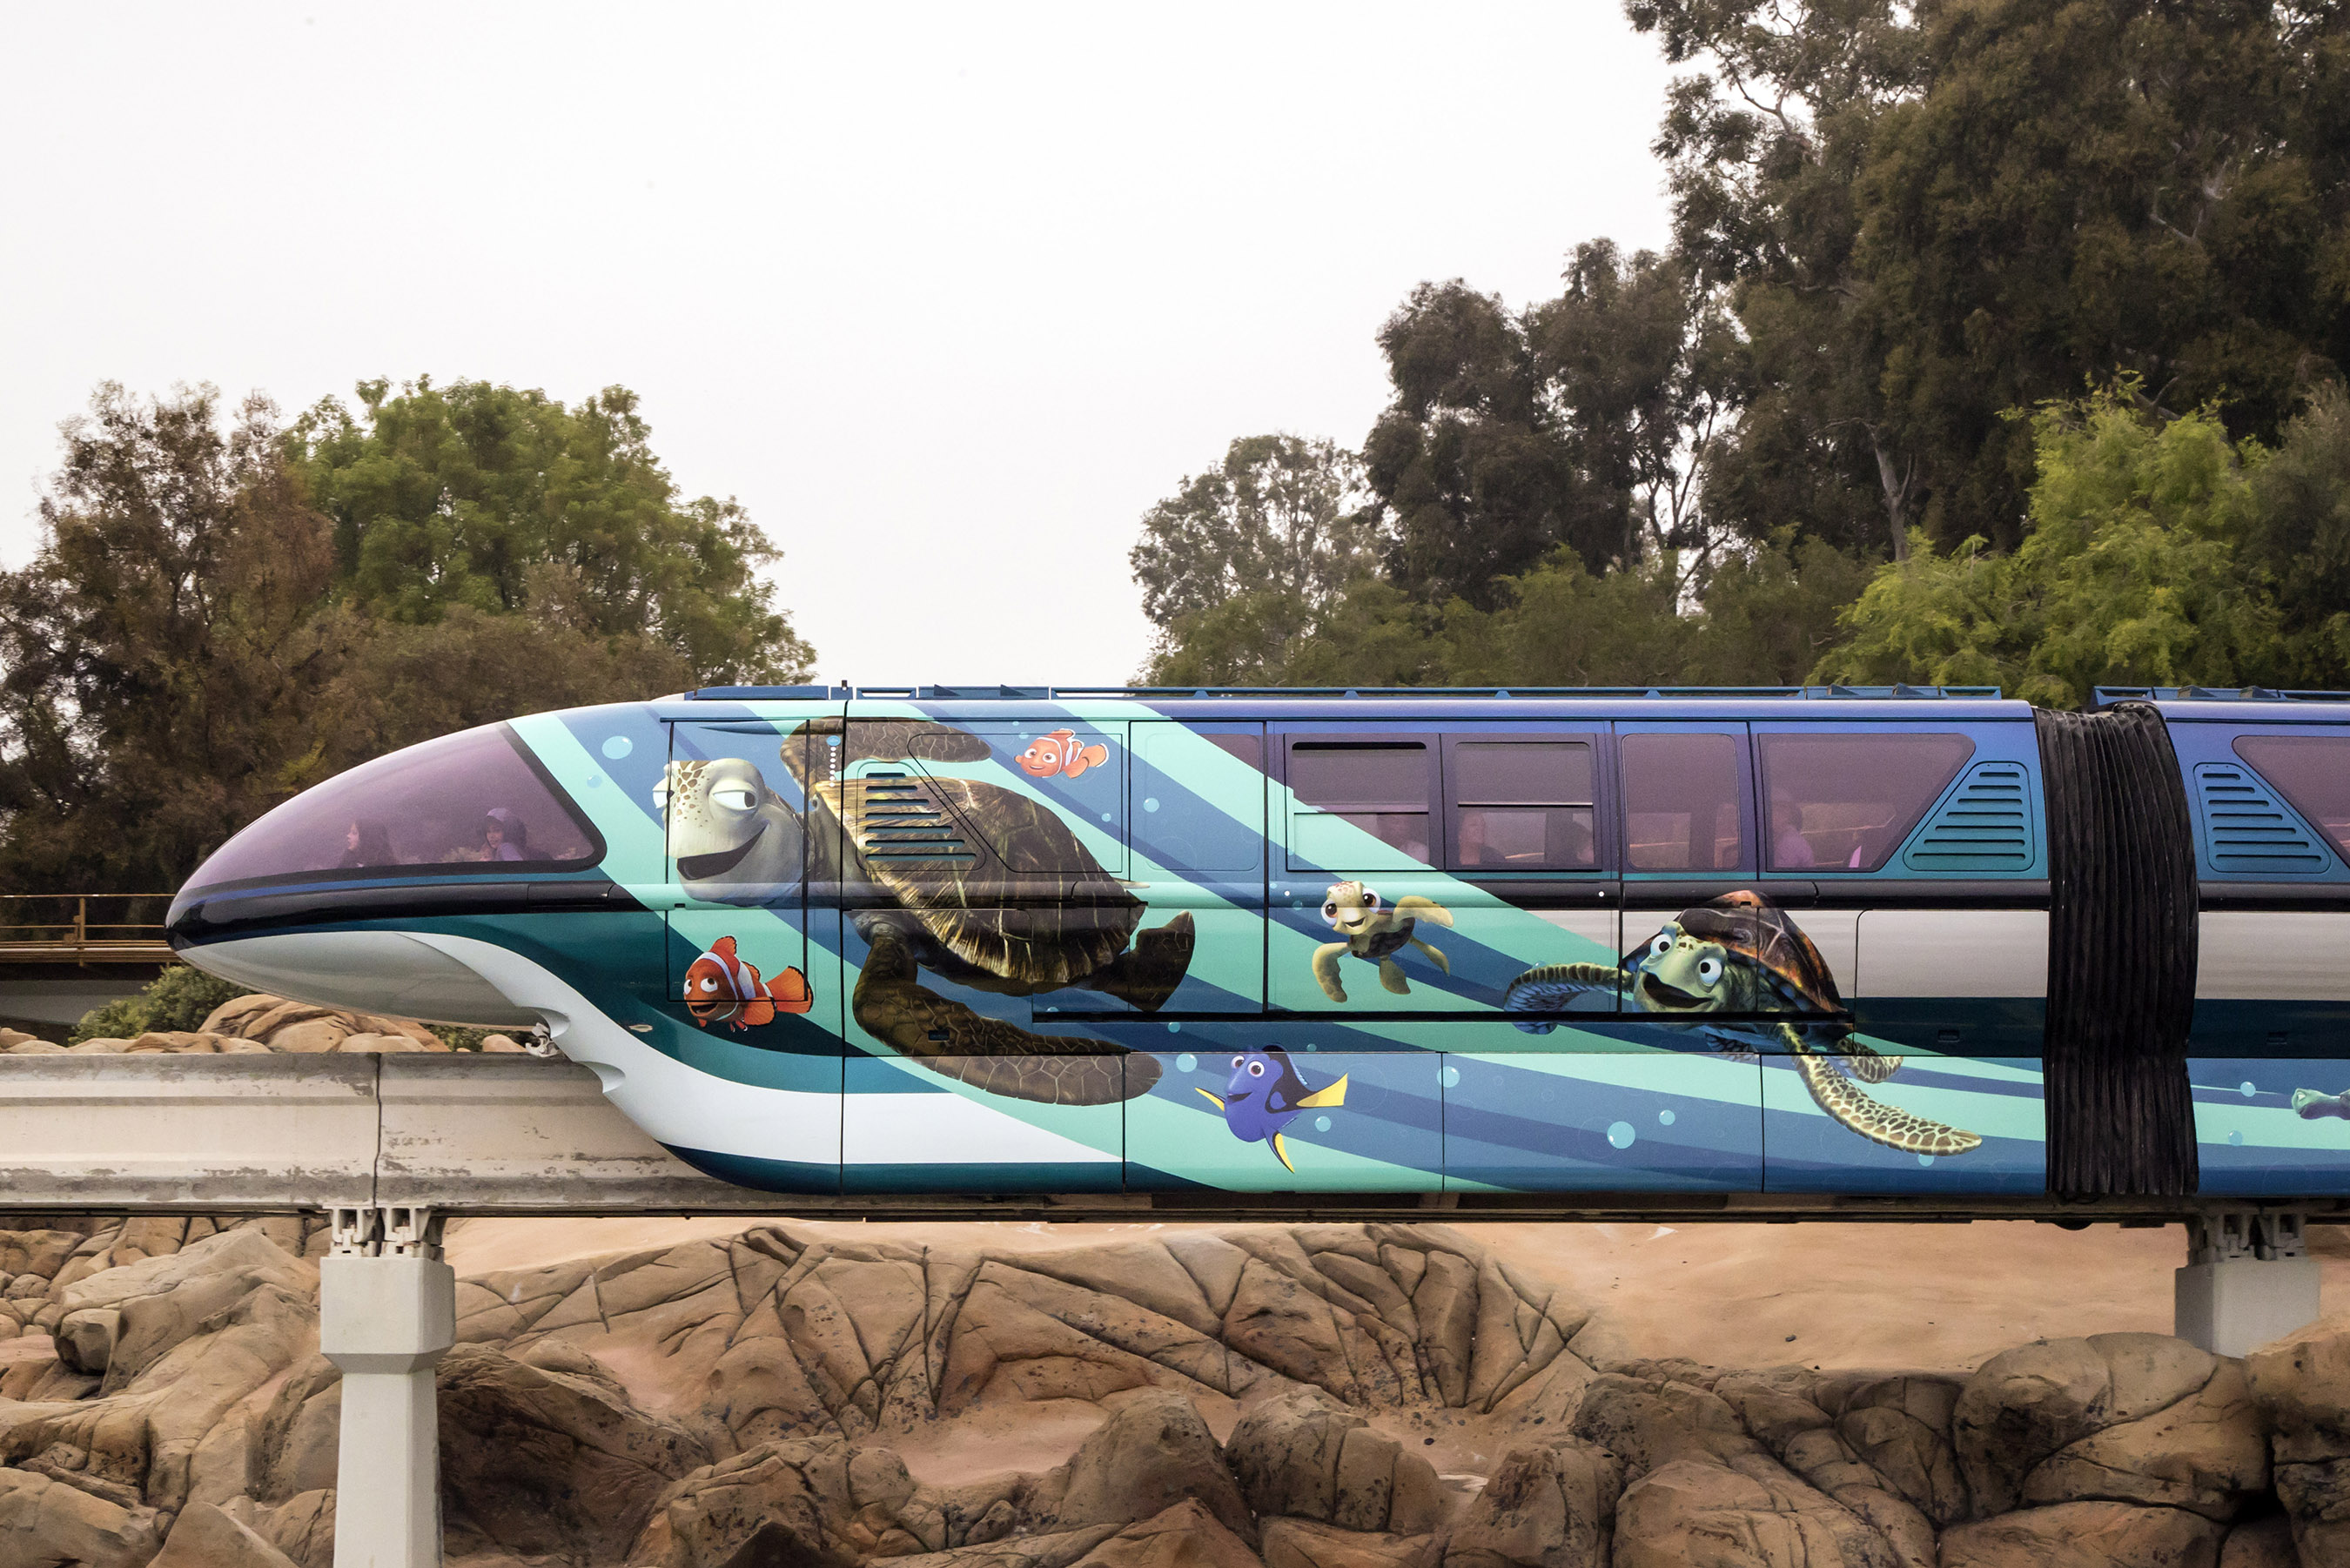 """PIXAR FEST AT THE DISNEYLAND RESORT (ANAHEIM, Calif.) - The Disneyland Monorail is zipping through the resort with a new Pixar-themed look to celebrate Pixar Fest! The blue train, inspired by Disney•Pixar's """"Finding Nemo,"""" features Crush and Squirt surfing alongside pals Nemo and Dory. Pixar Fest, the biggest Pixar celebration ever to come to Disney Parks, brings guests together to celebrate friendship and beyond at the Disneyland Resort from April 13 through Sept. 3, 2018. (Joshua Sudock/Disneyland Resort)"""